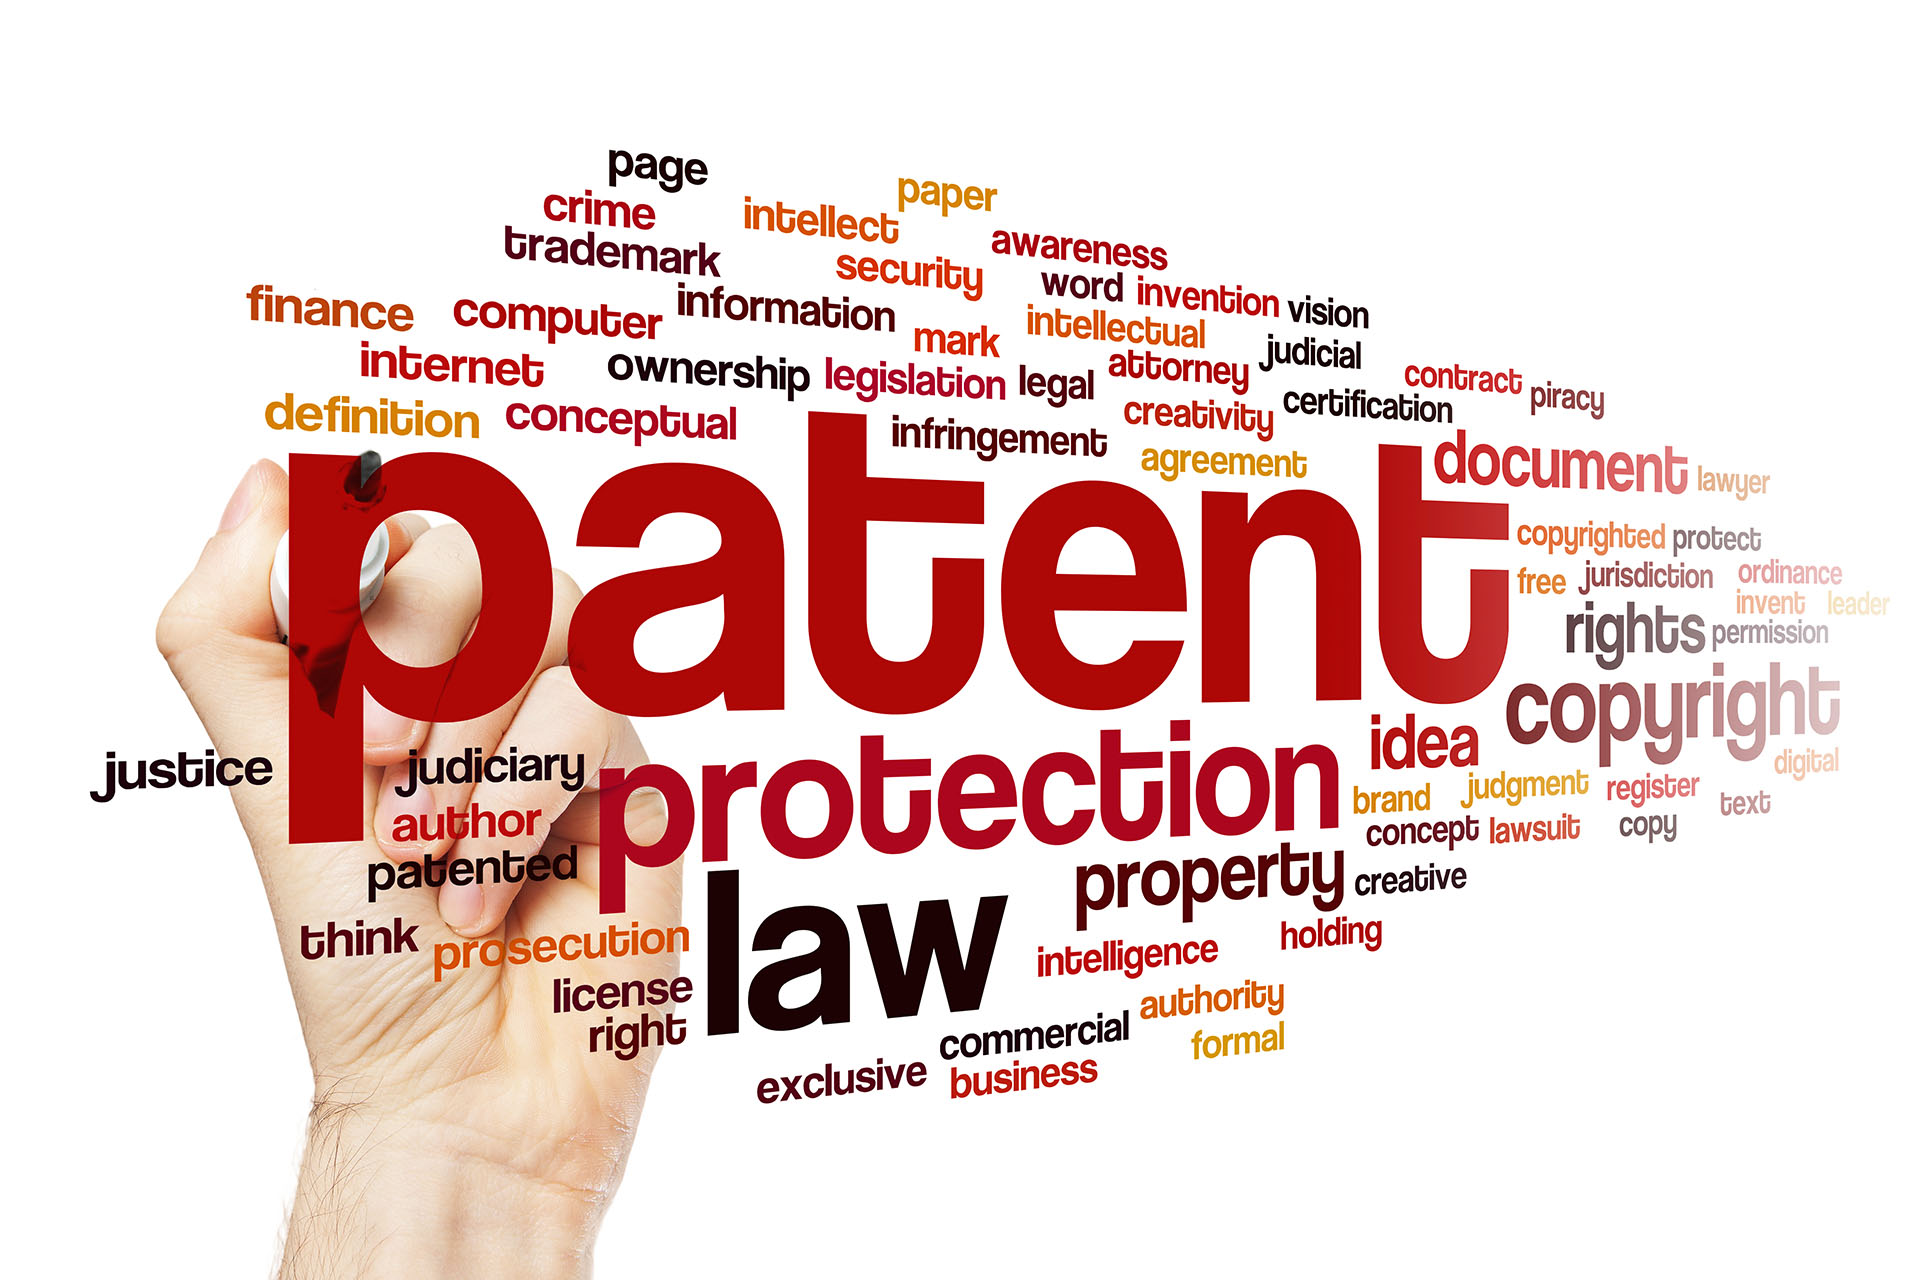 How to secure a patent?